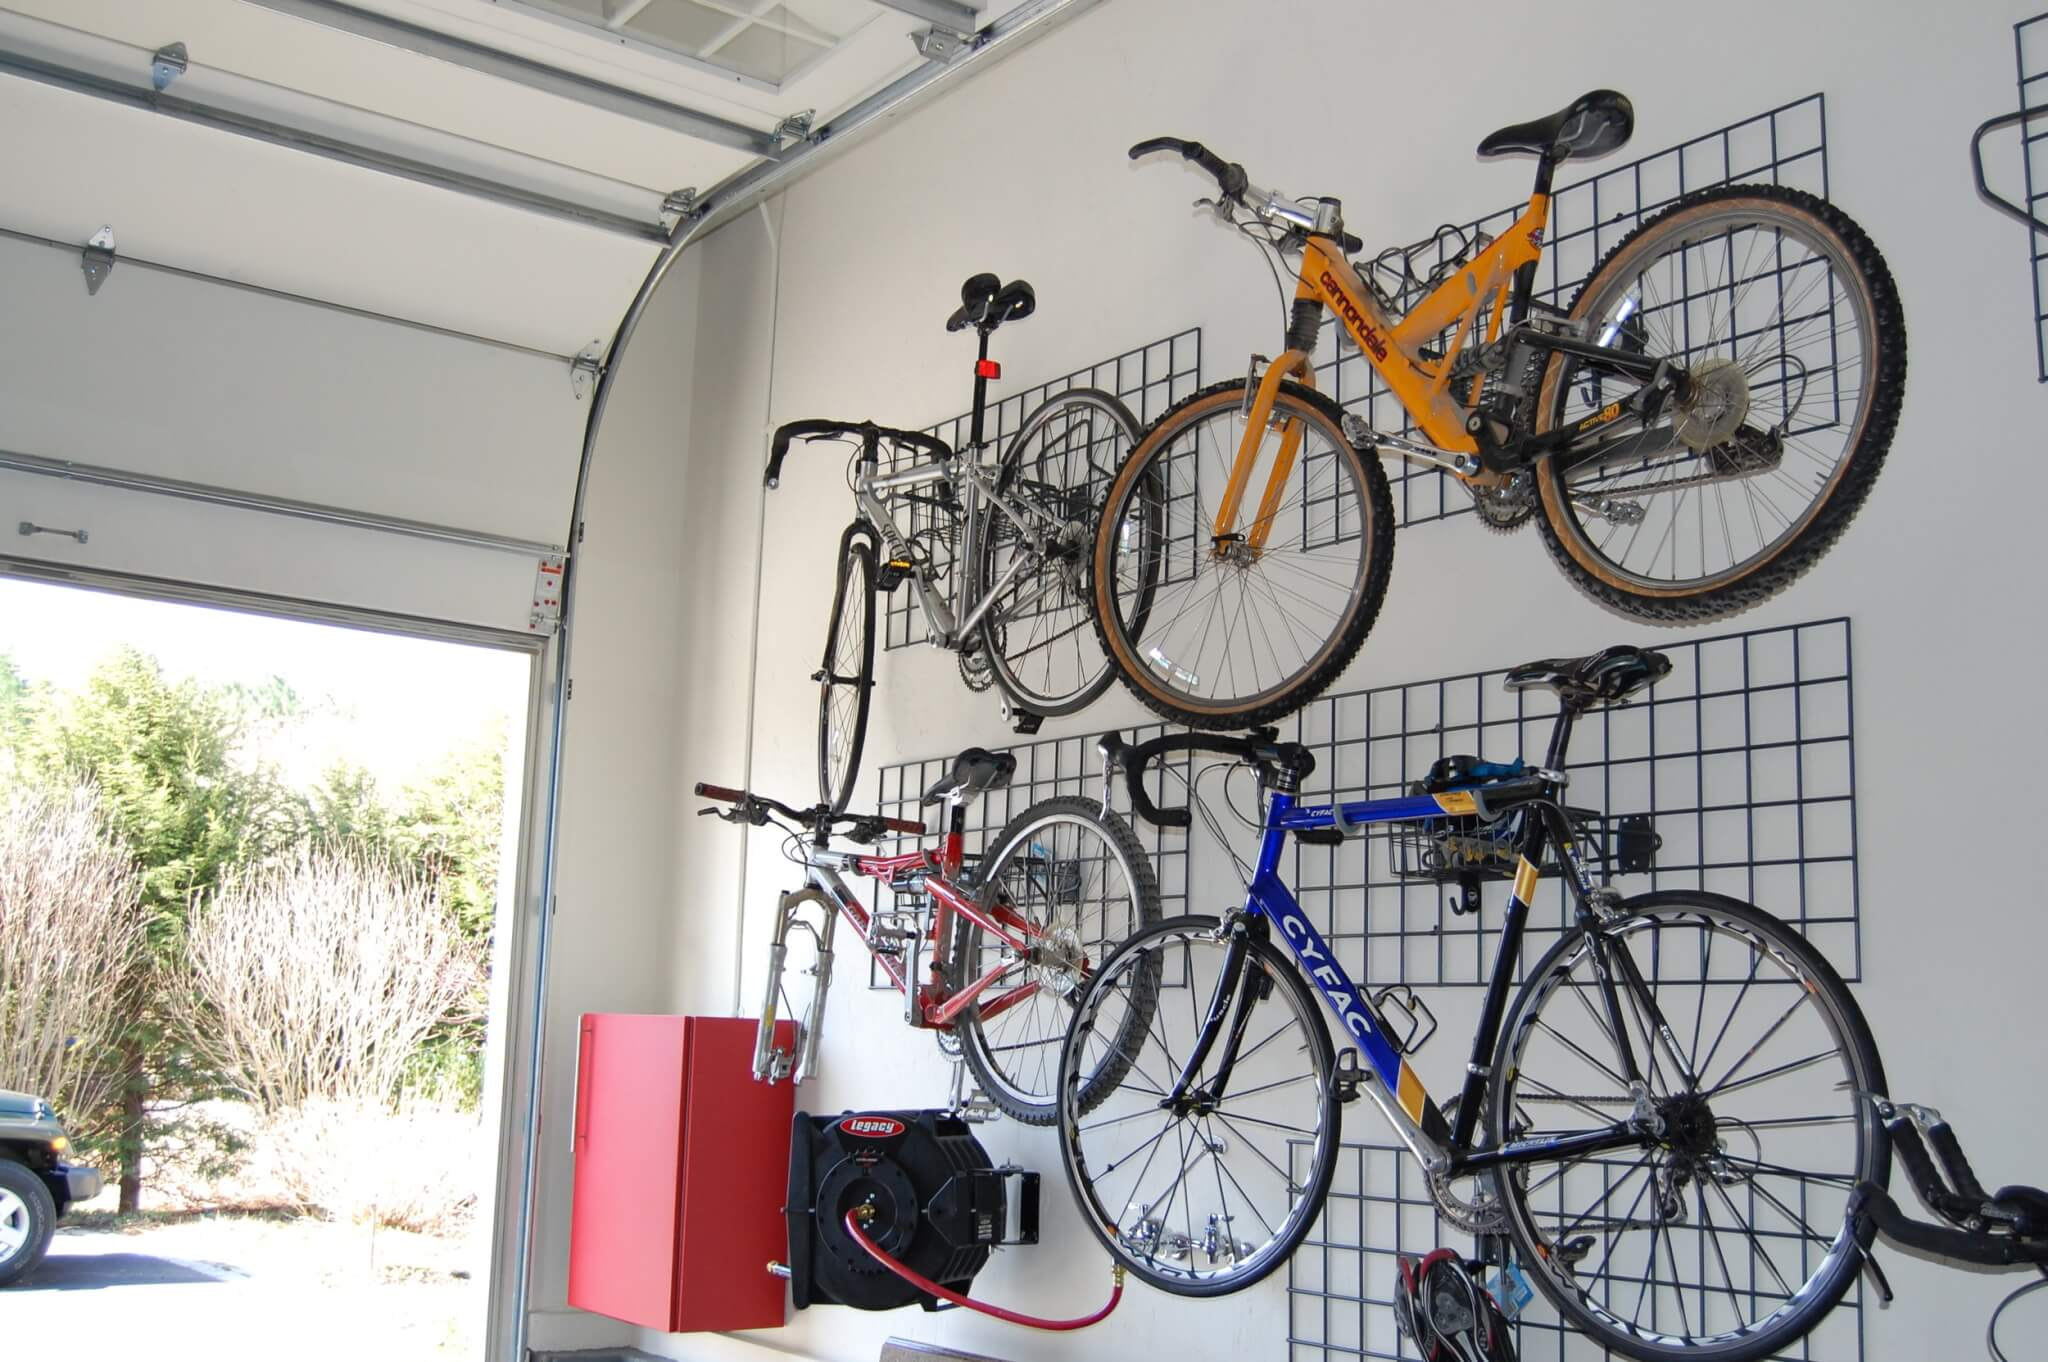 Bike+rack+&+baskets